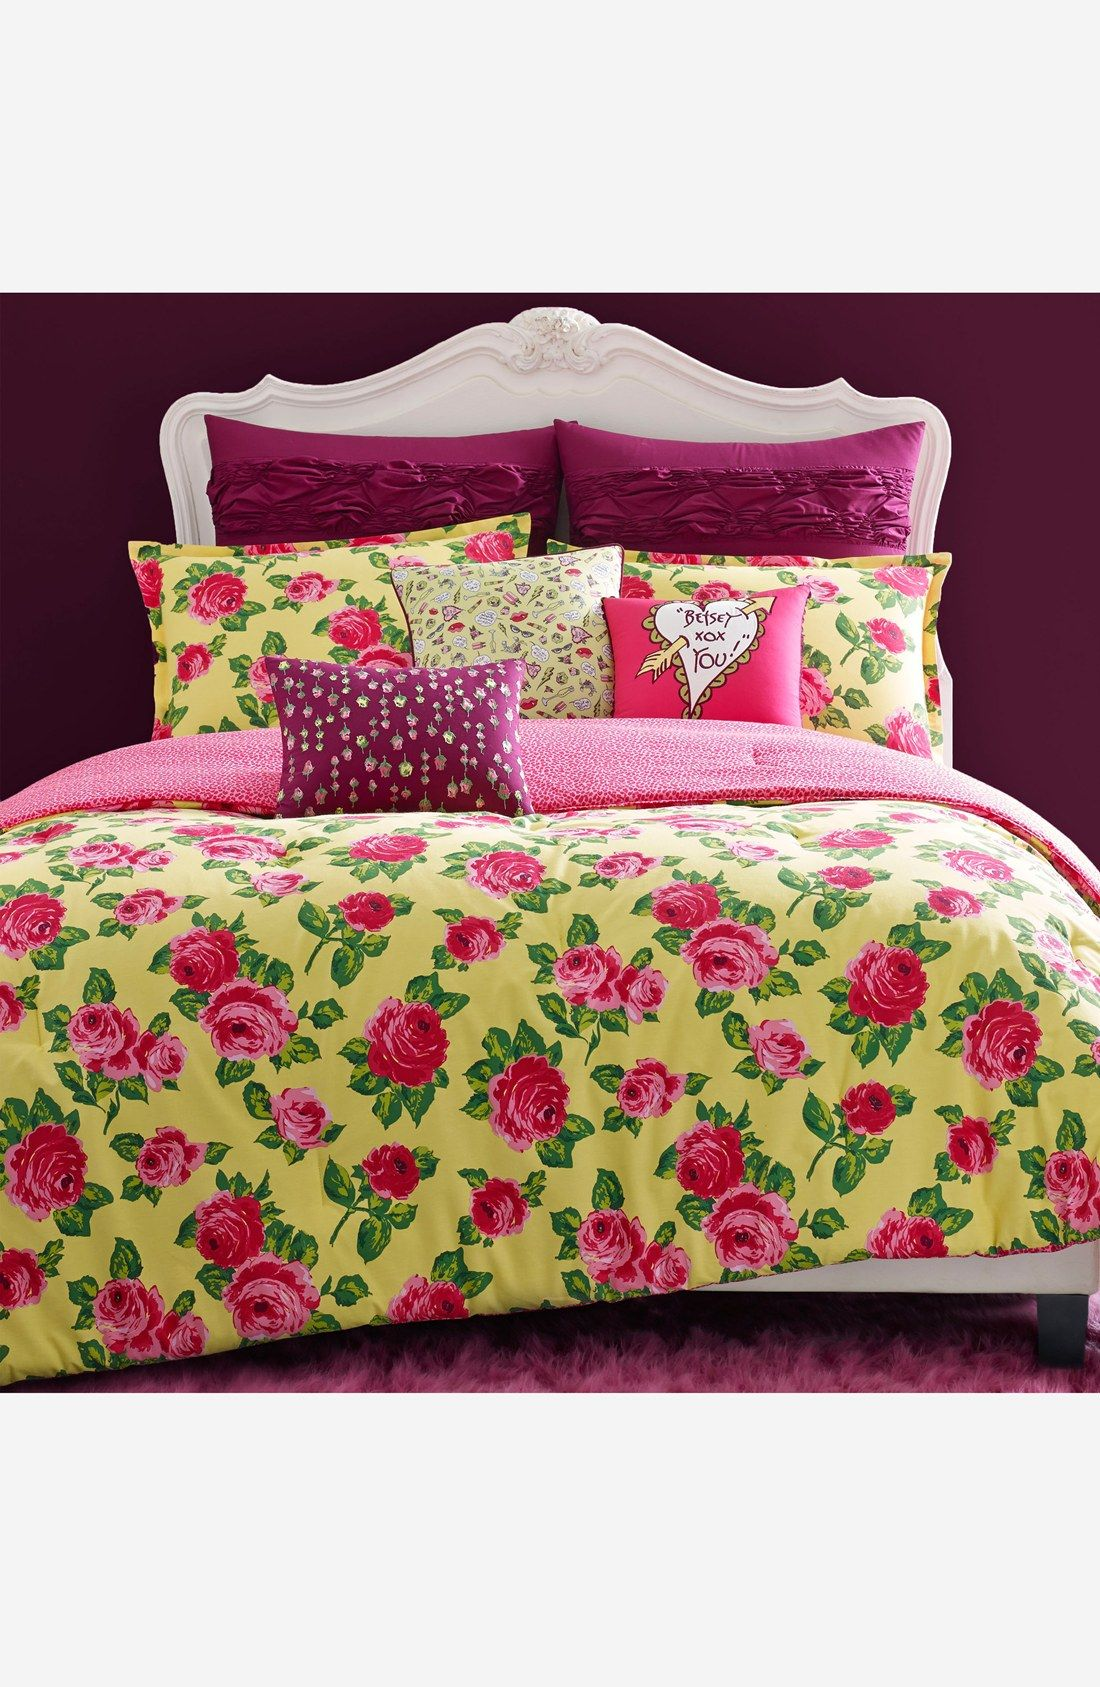 pin comforter bed home d bedding betsey variety nordstrom cor set johnson garden